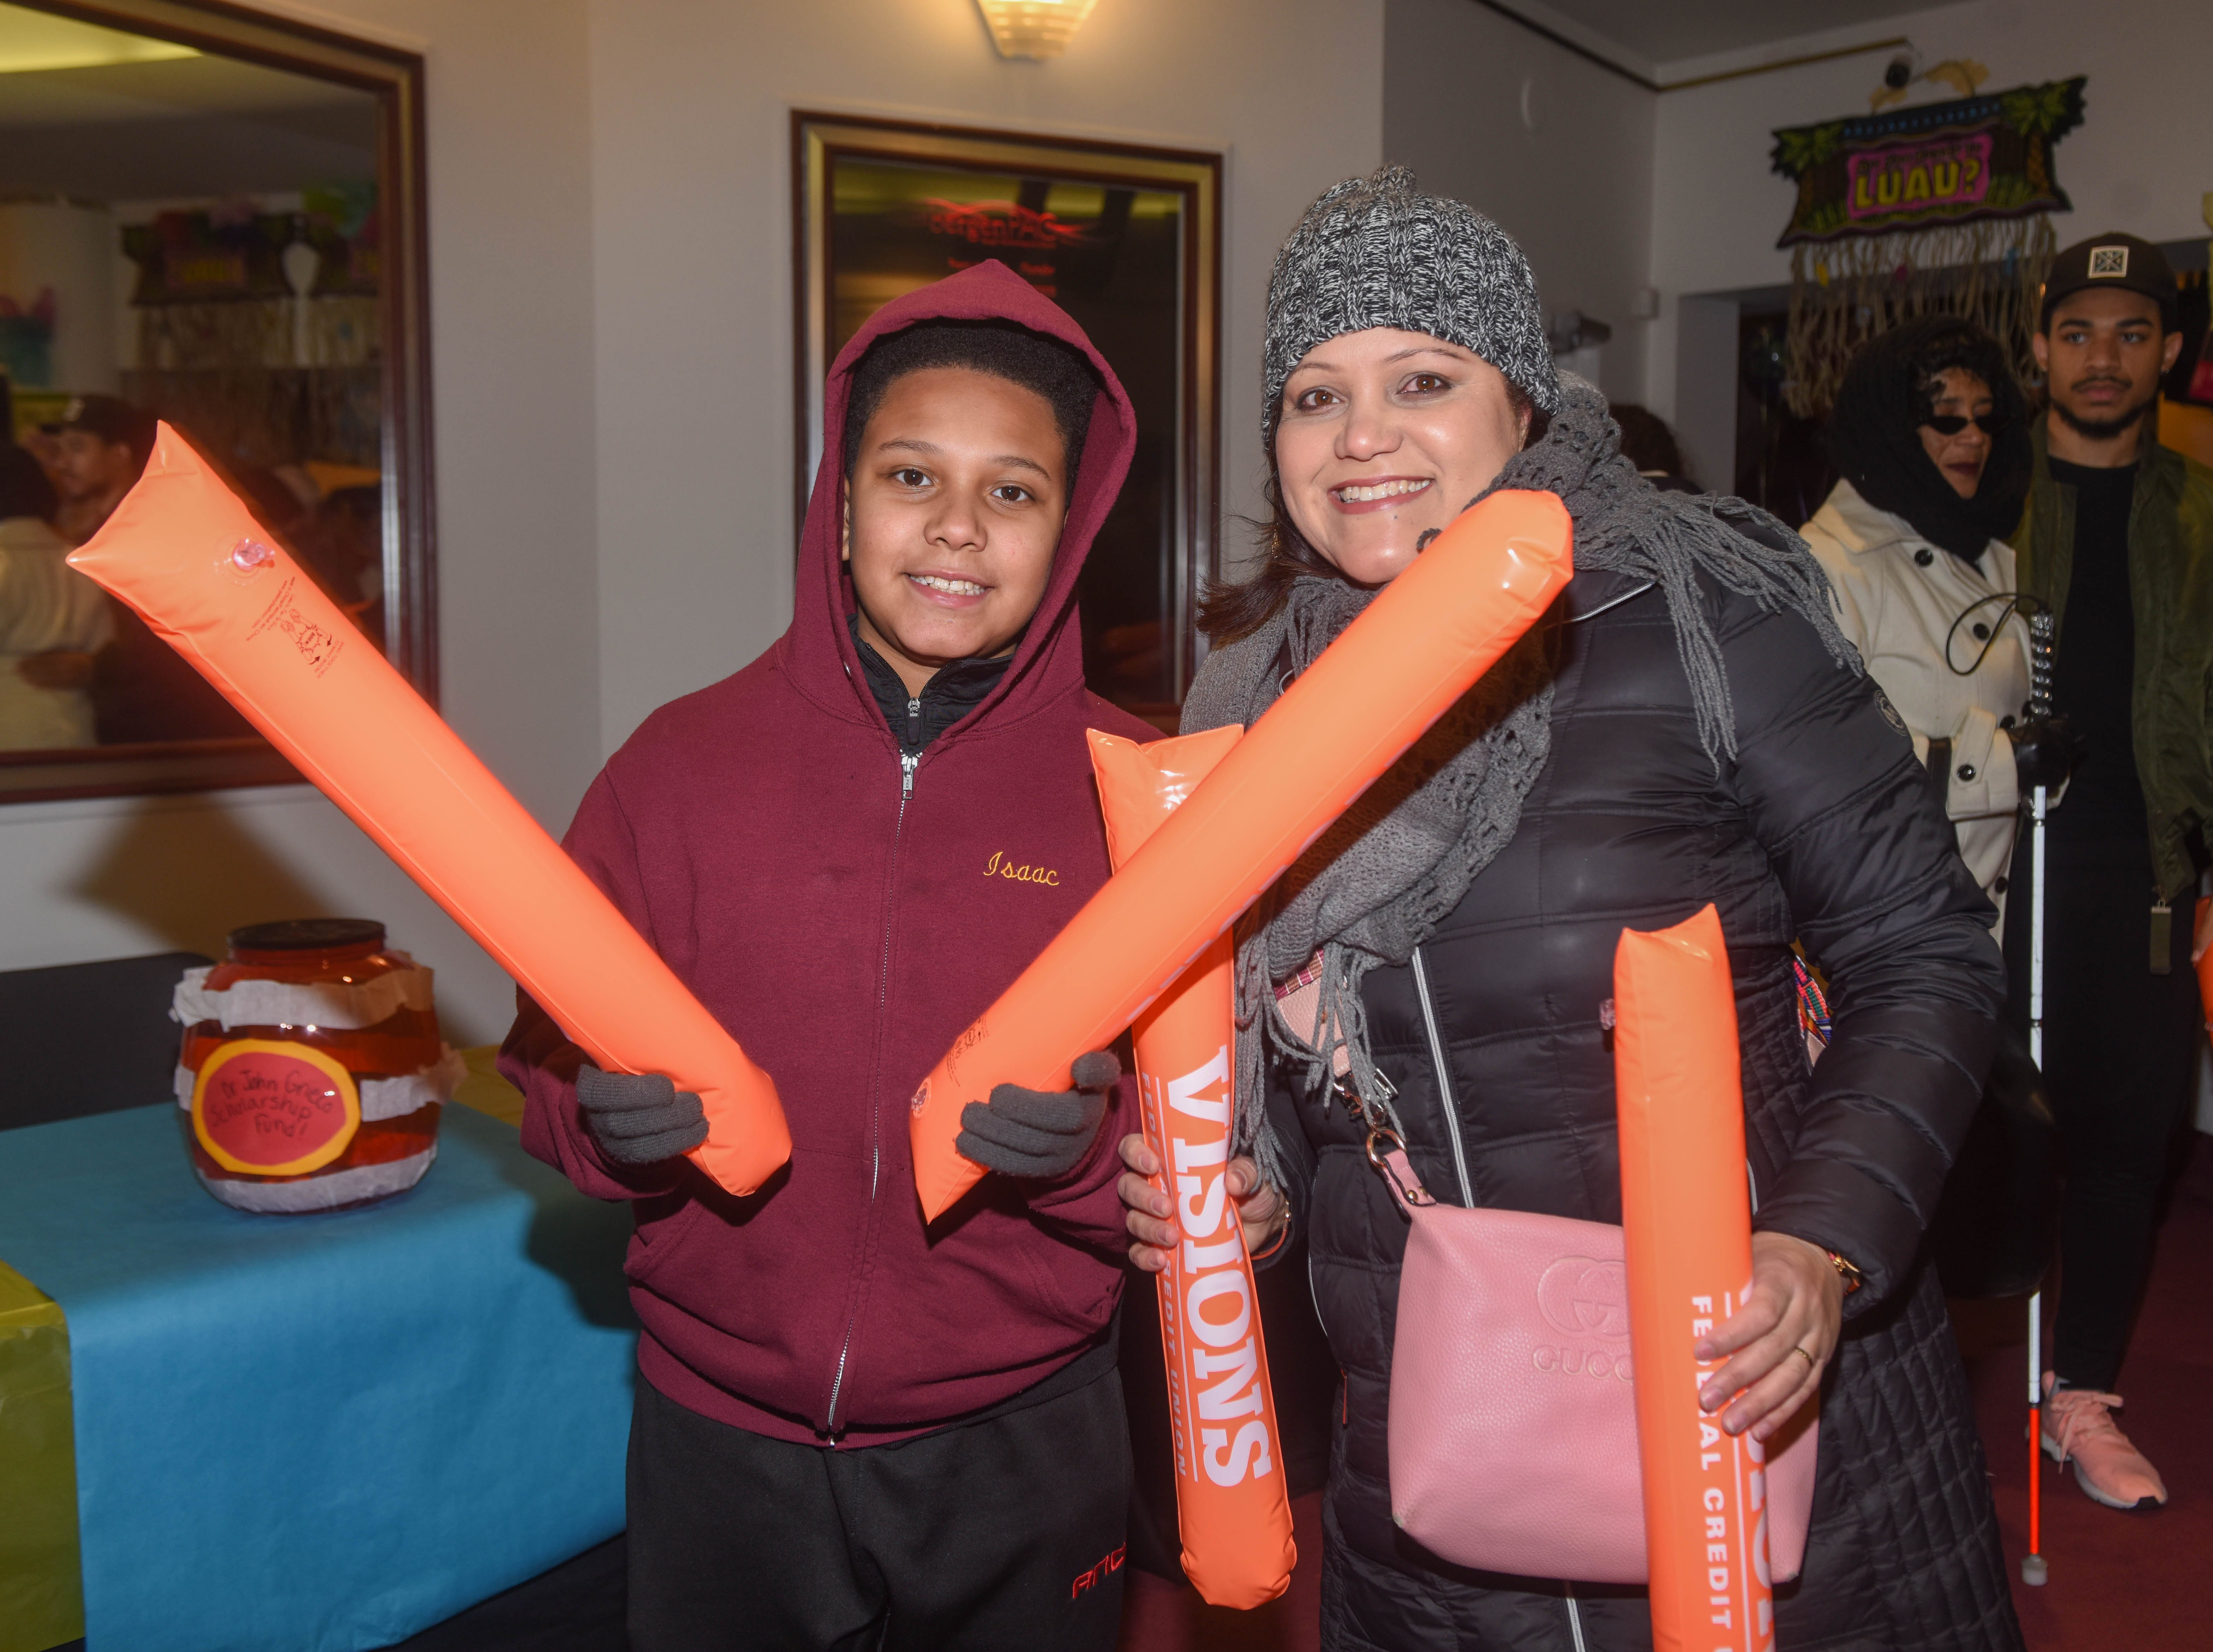 Isaac and Nika Joaquin. The 2019 Englewood Idol was held at bergenPAC theater. The singing competition is open to any high school student who currently lives or goes to school in Englewood, NJ. This years winner was Genesis Capellan. 01/11/2019